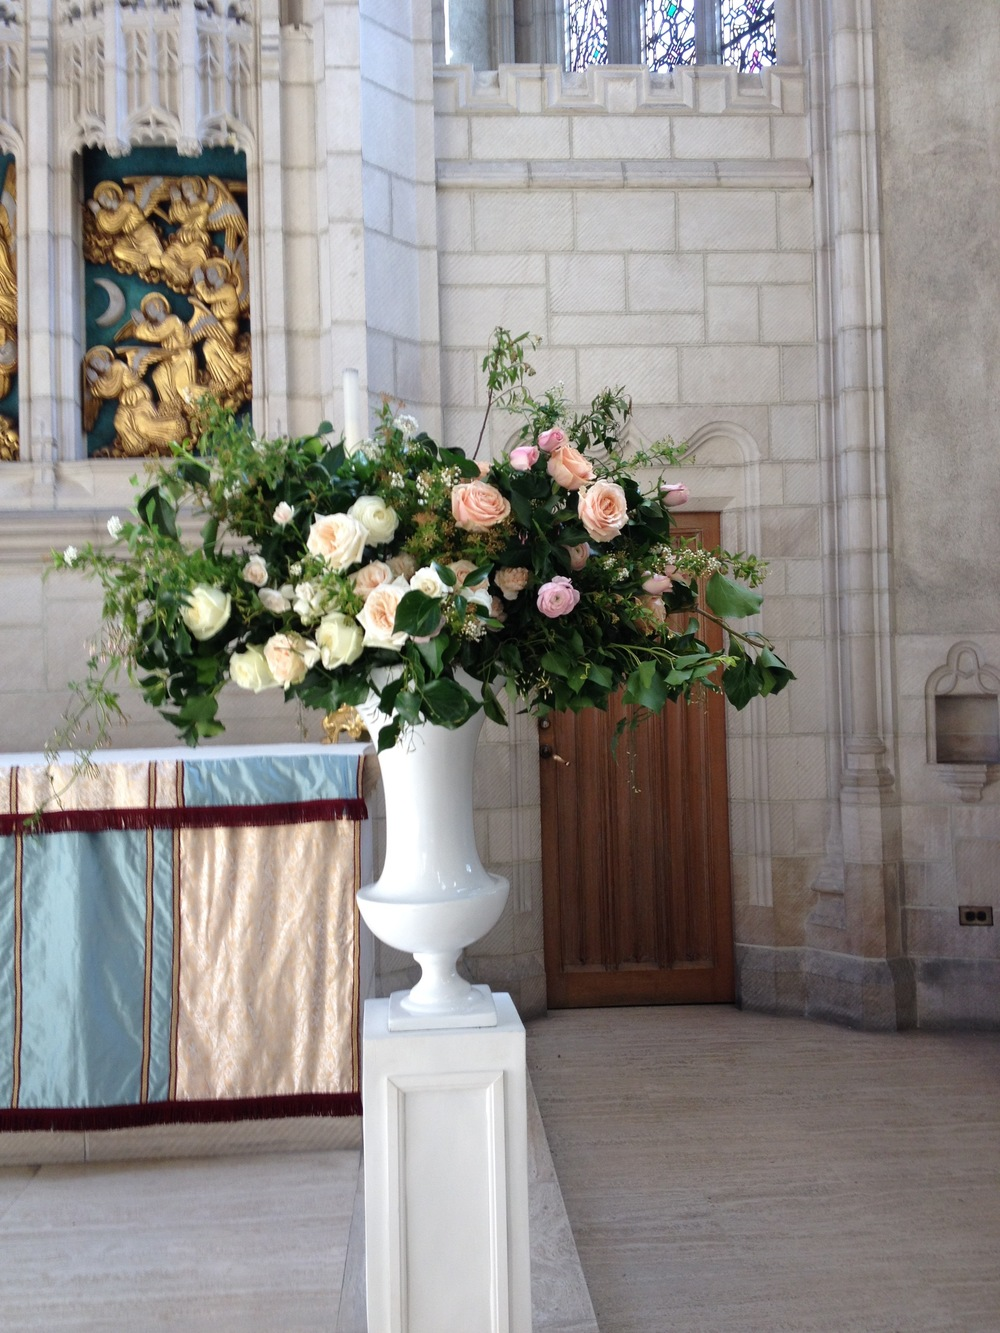 Here's a close-up of one of the large urn arrangements that flanked the altar. Designed by Lisa but executed by me!